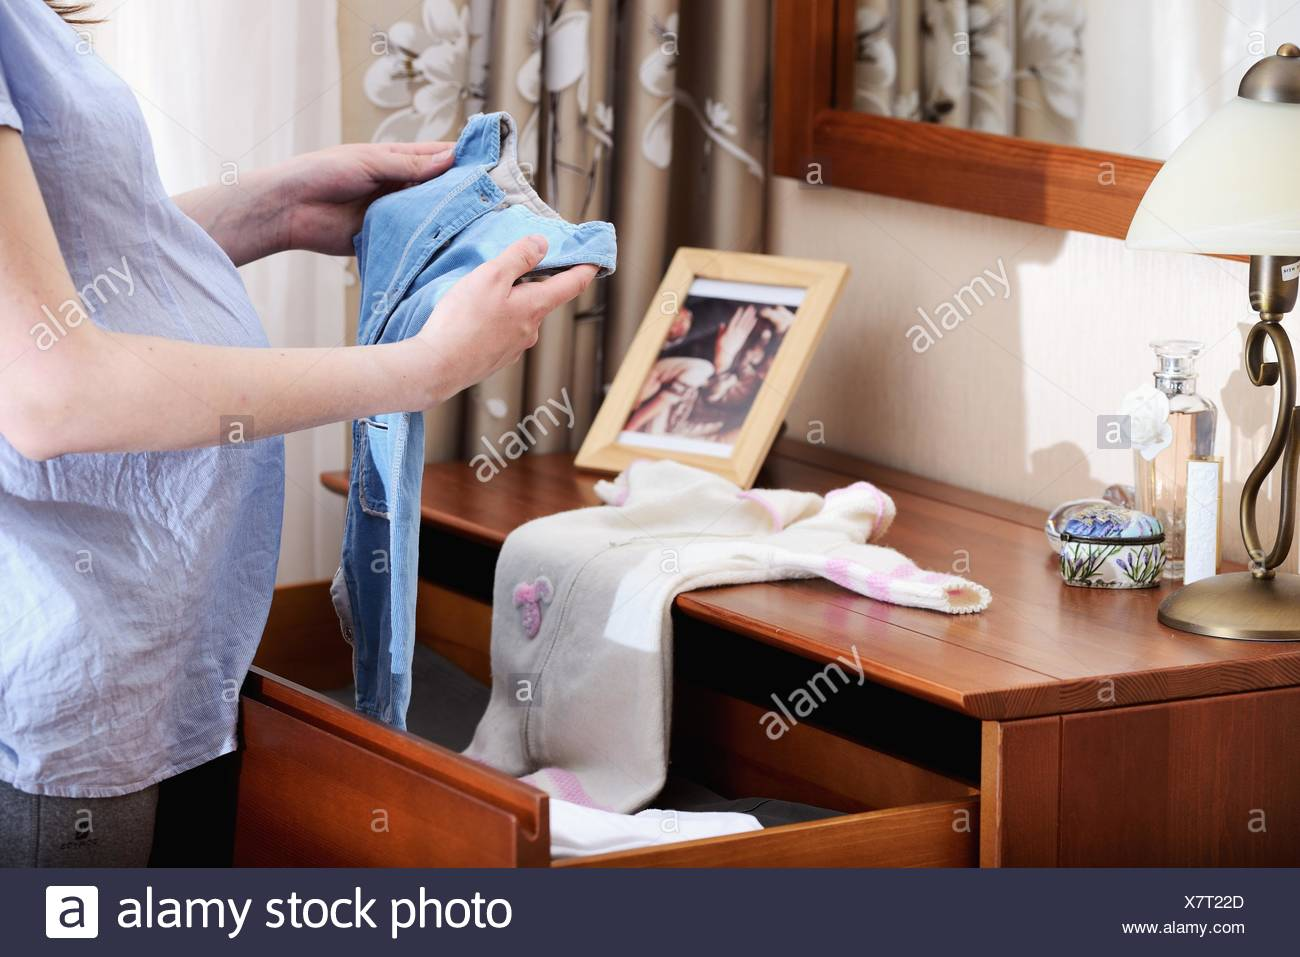 Pregnant woman holding baby clothes, mid section - Stock Image